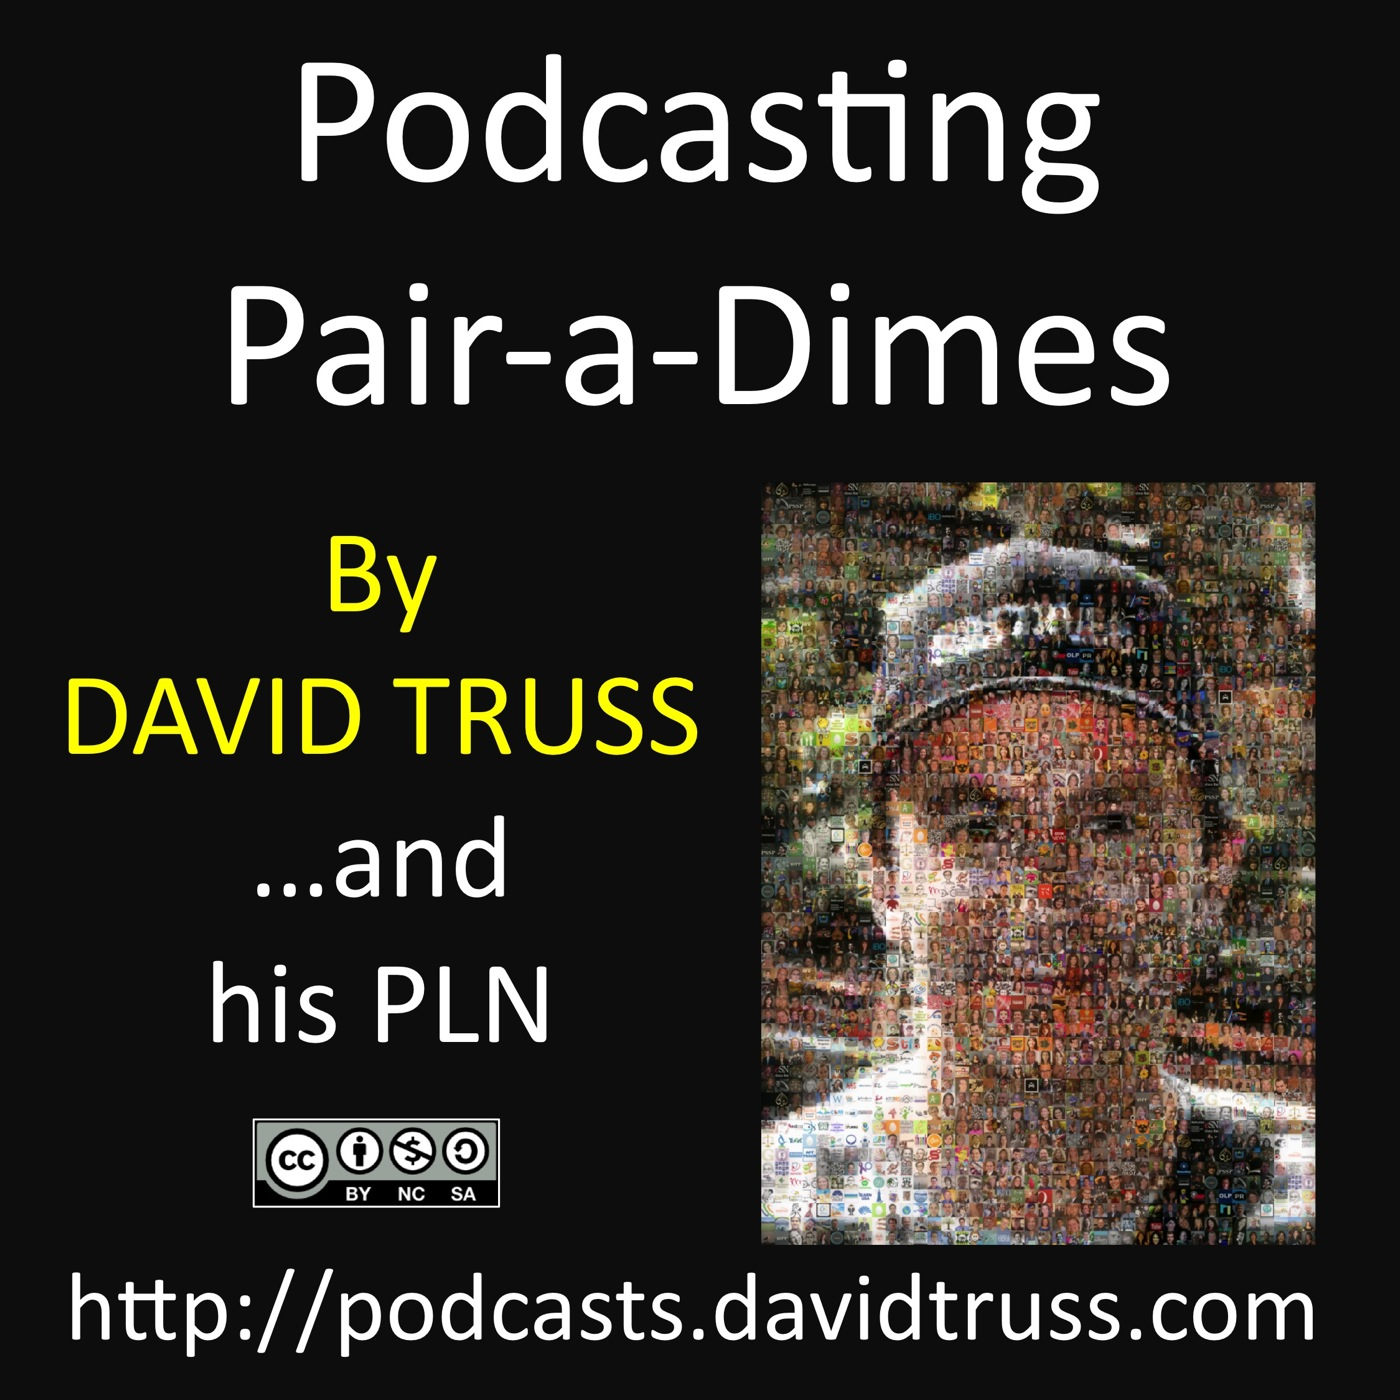 Podcasting Pair-a-Dimes